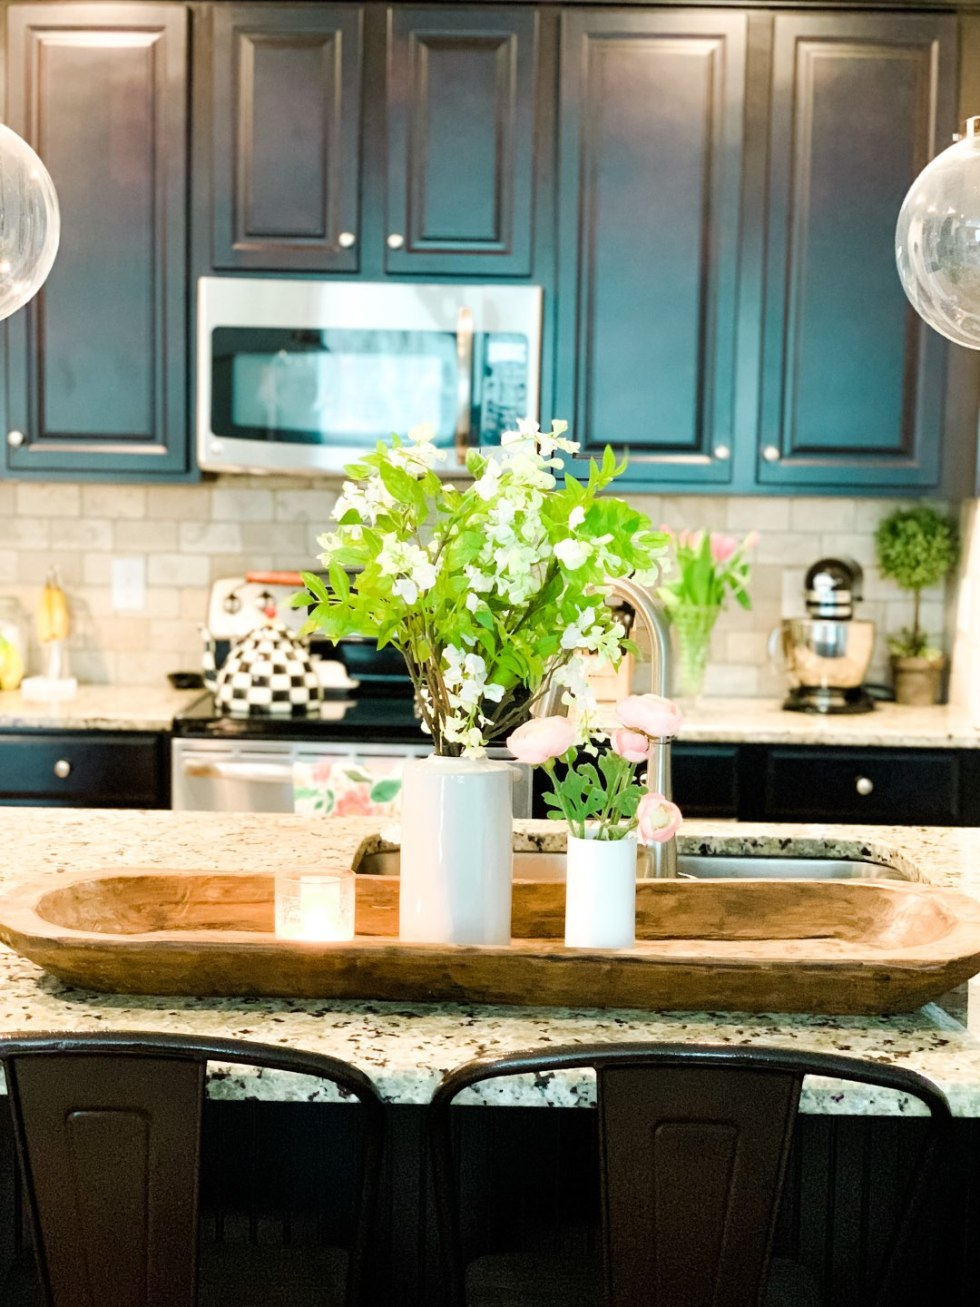 10 Best Faux Greenery from Target for your Home - I'm Fixin' To - @mbg0112